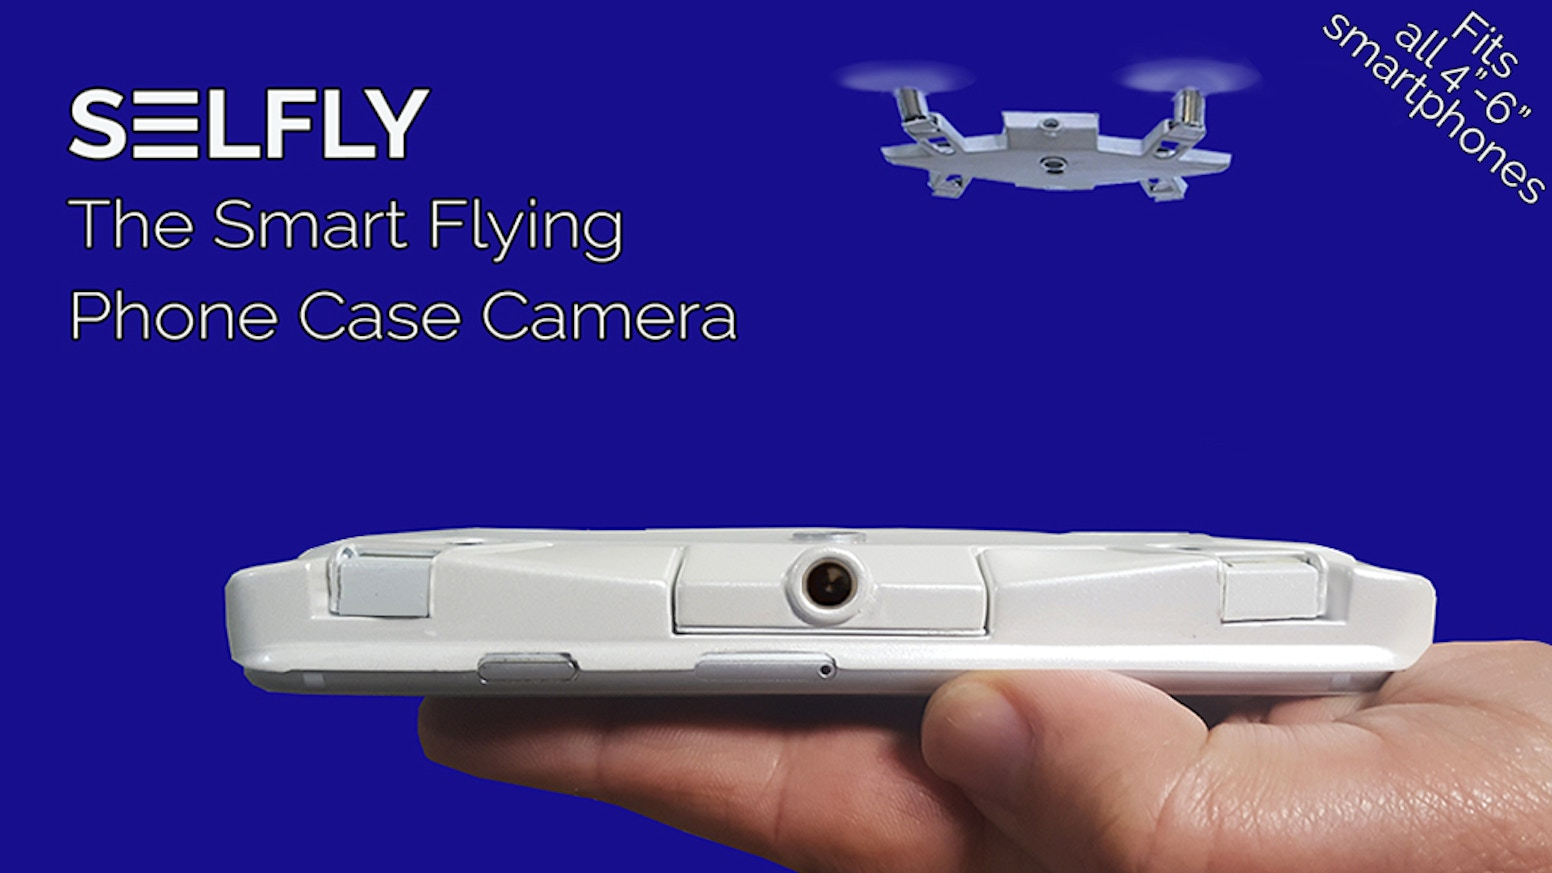 An autonomous flying phone case camera which is only 9mm (3/8in) thin and easily fits in your pocket.